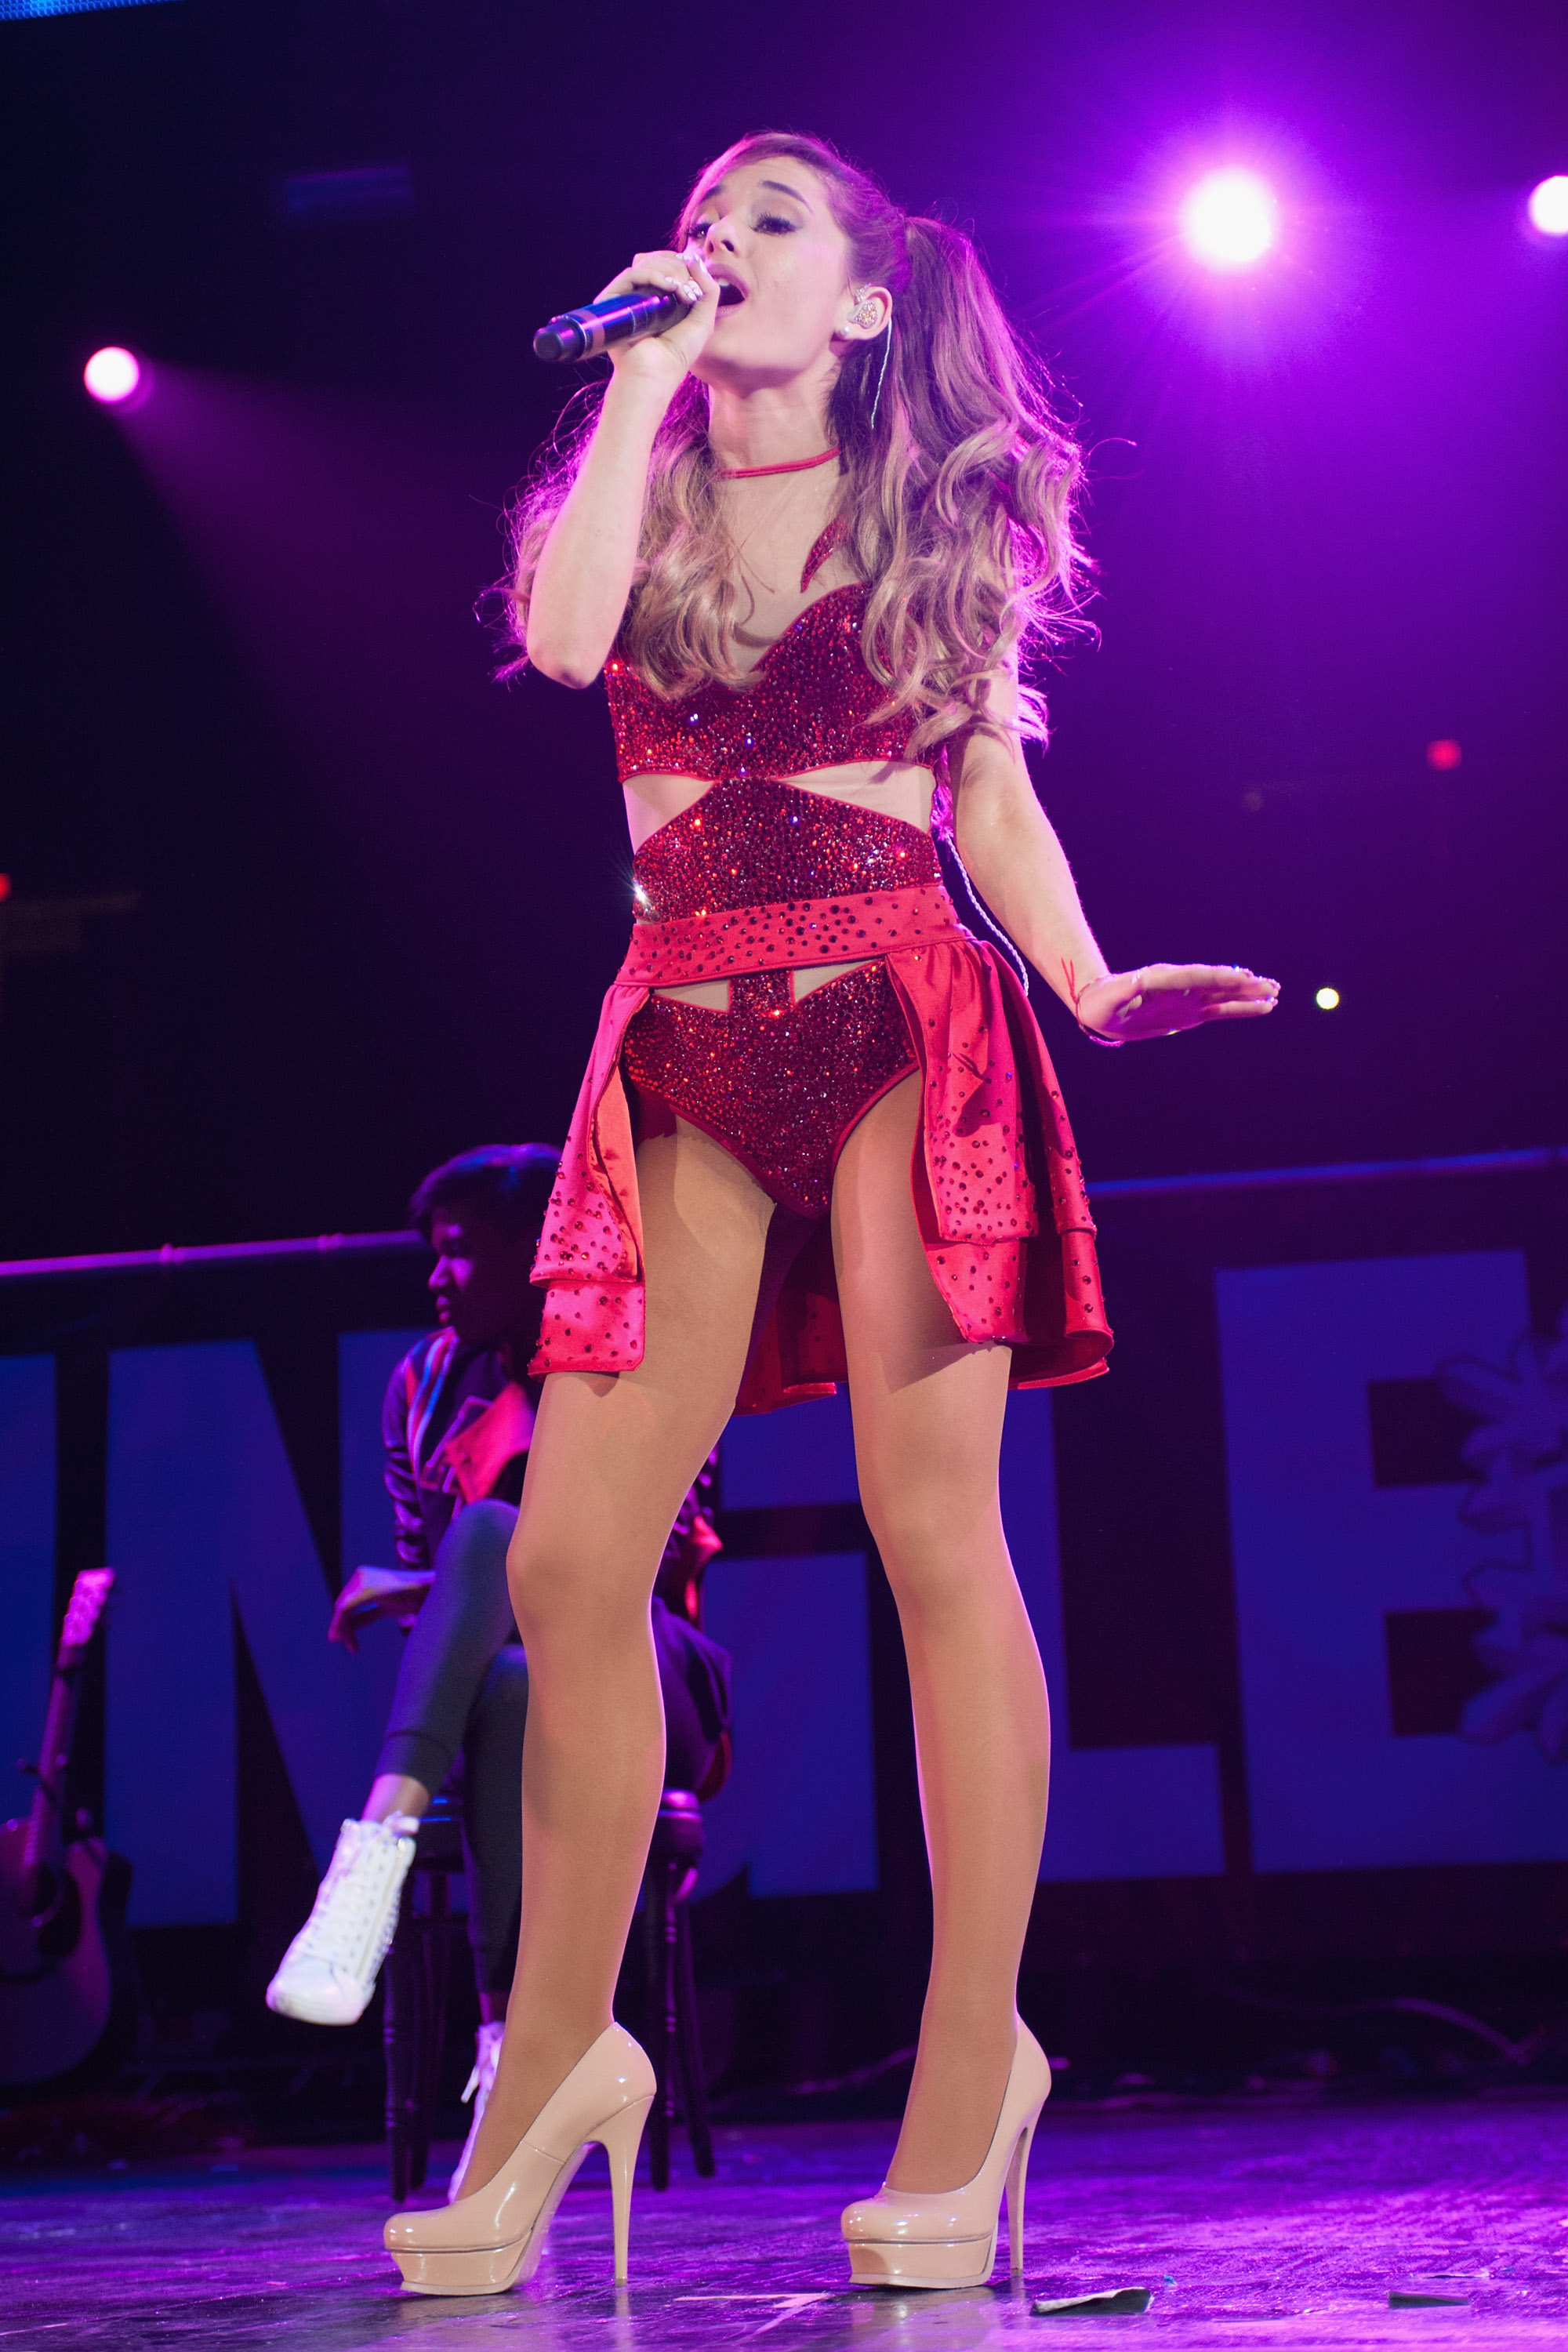 15 Crazy Ariana Grande Concert Clothes That Prove Sheu0026#39;s Breaking Free Of Her Teen Star Status